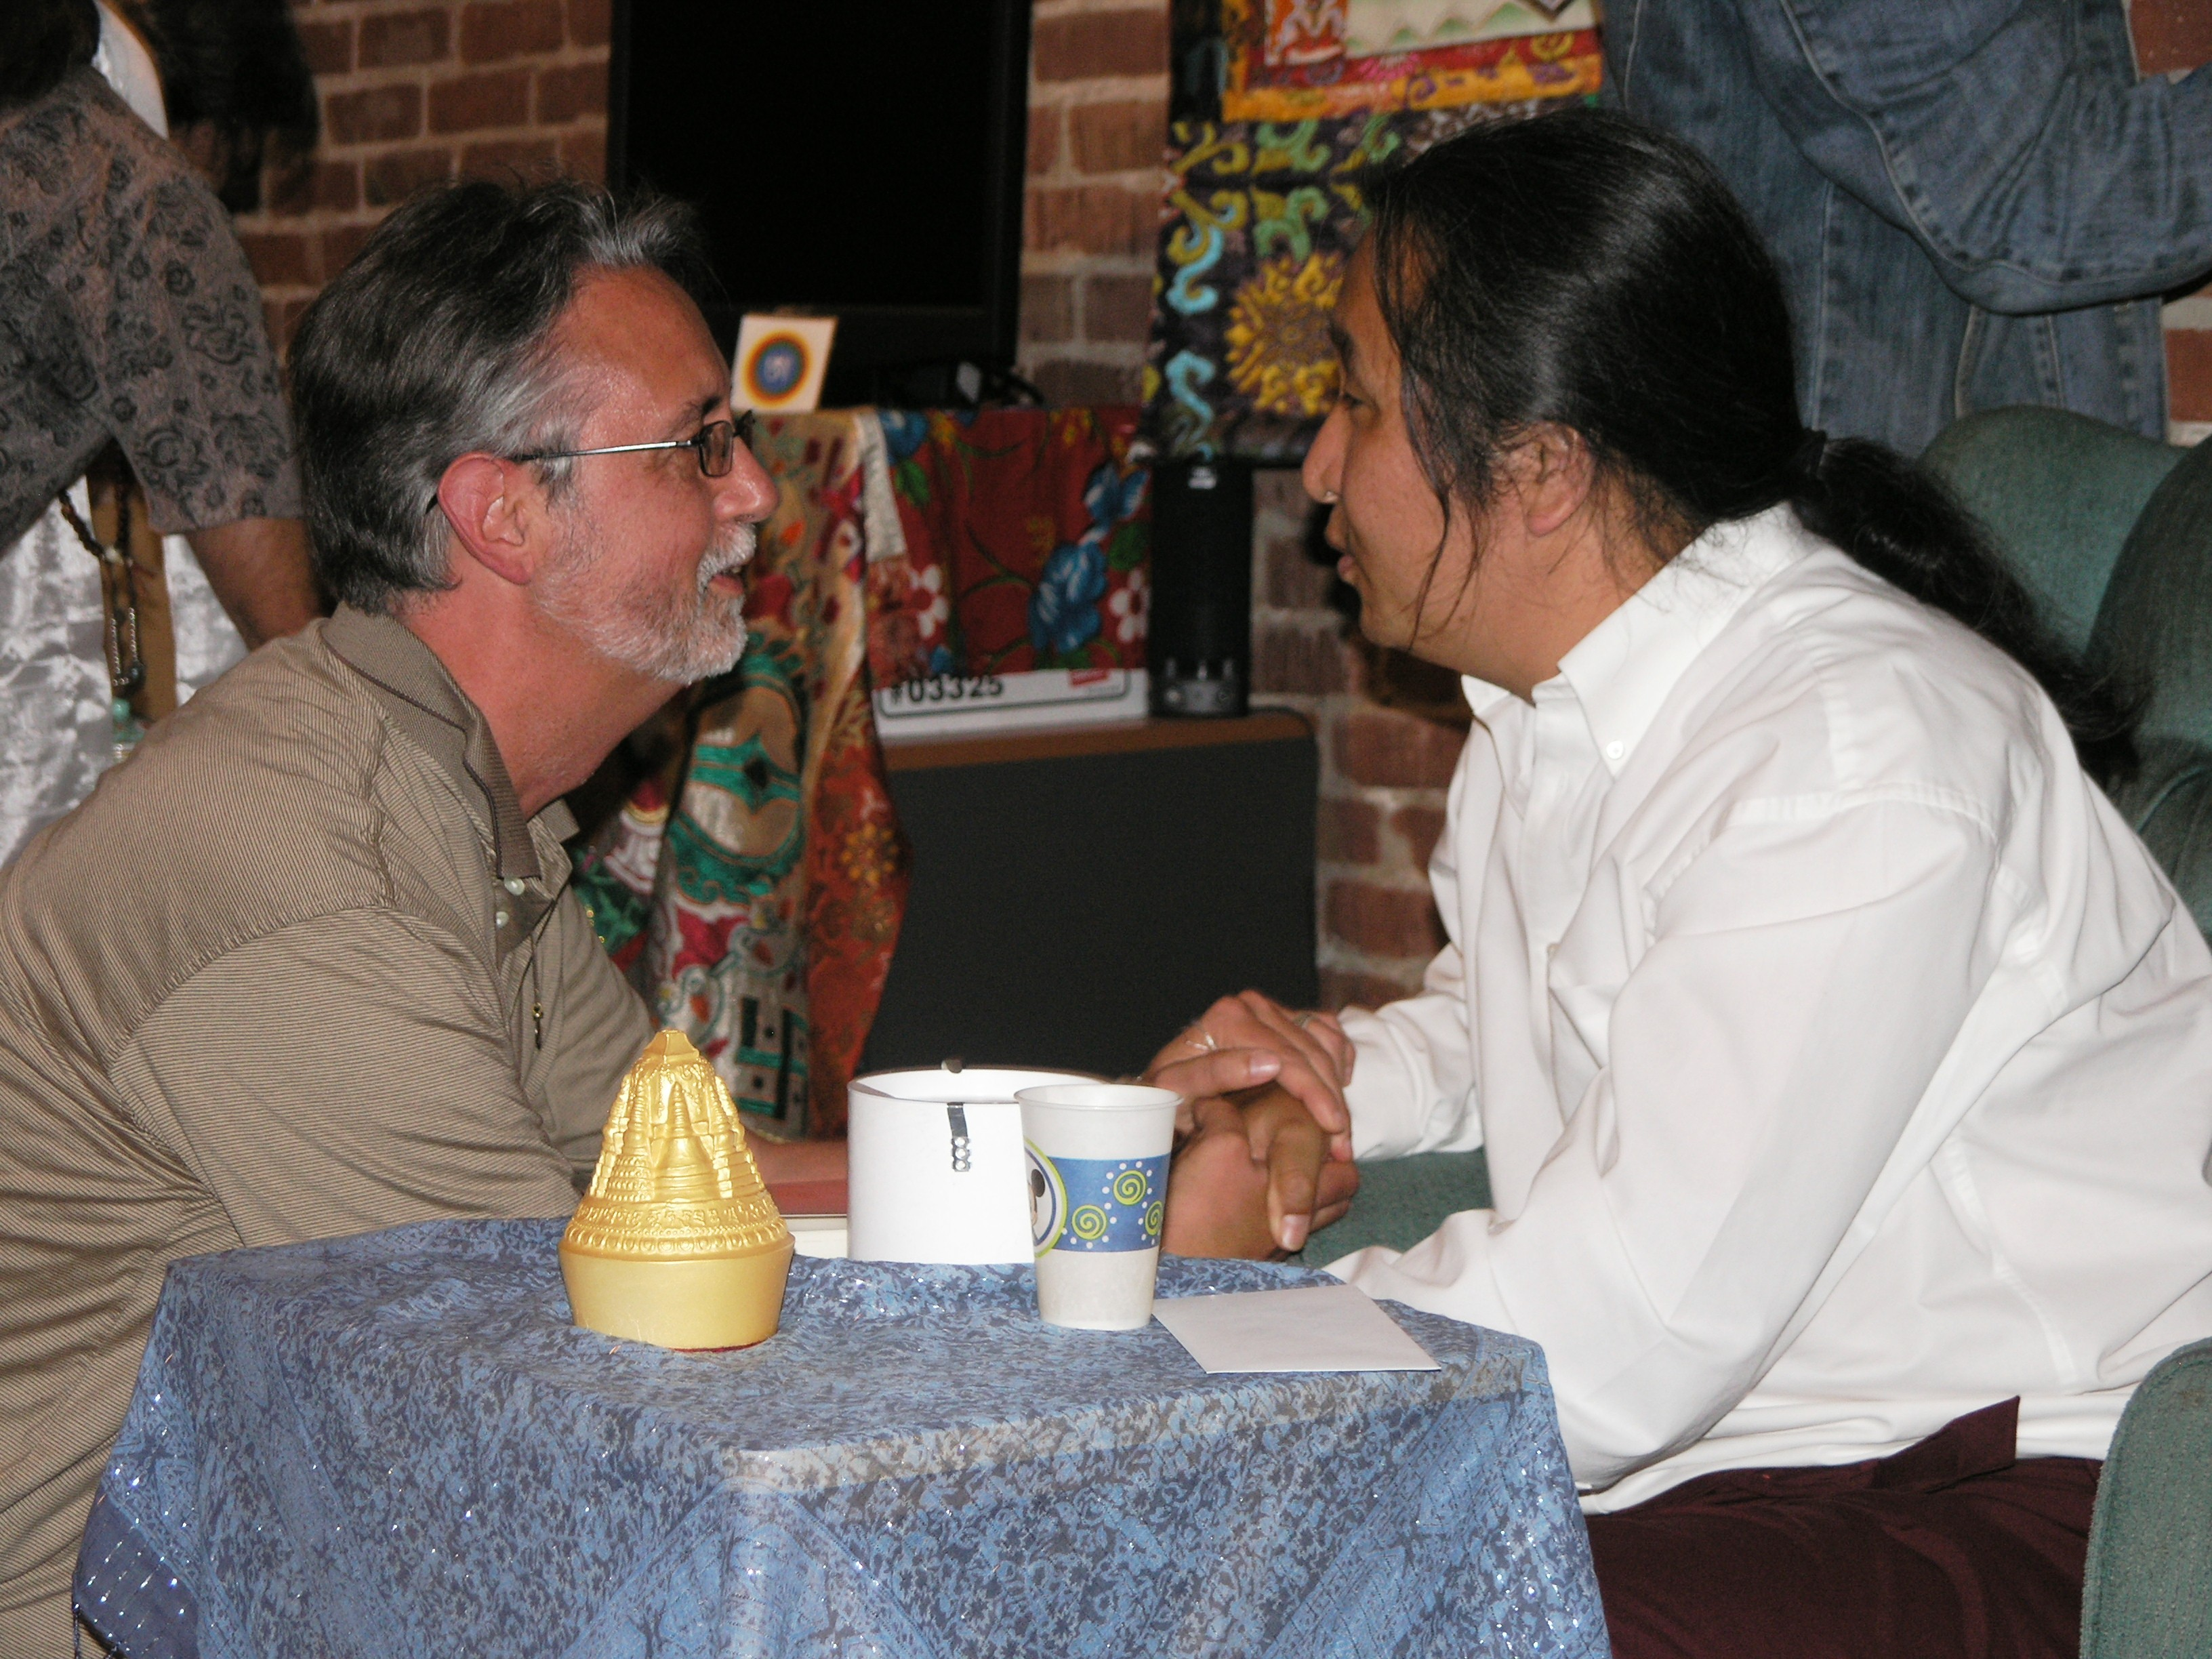 Loppon Jigme Rinpoche and Lama Thapkhay, 2006